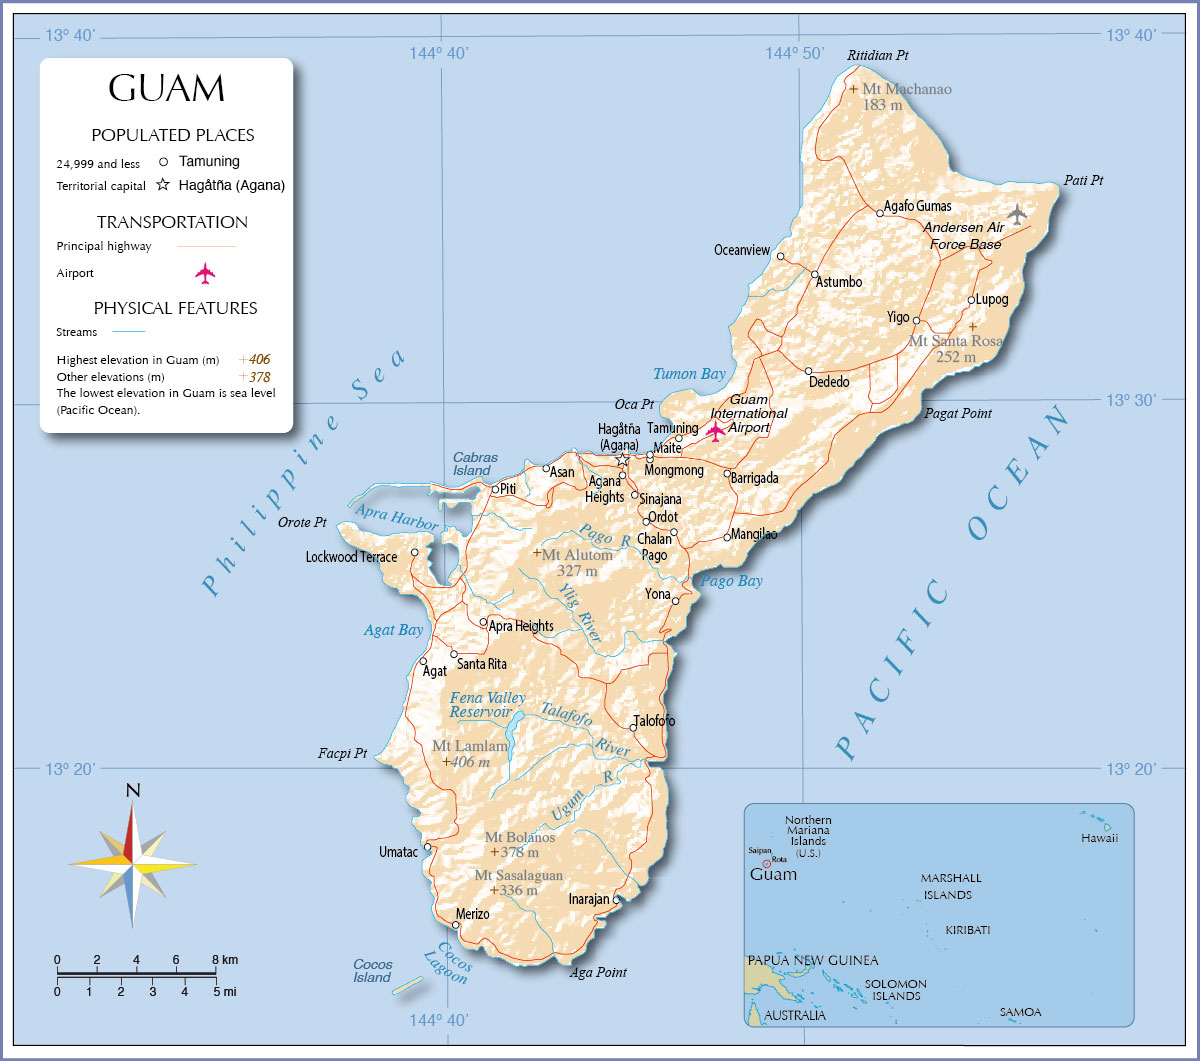 Map of Guam - Nations Online Project